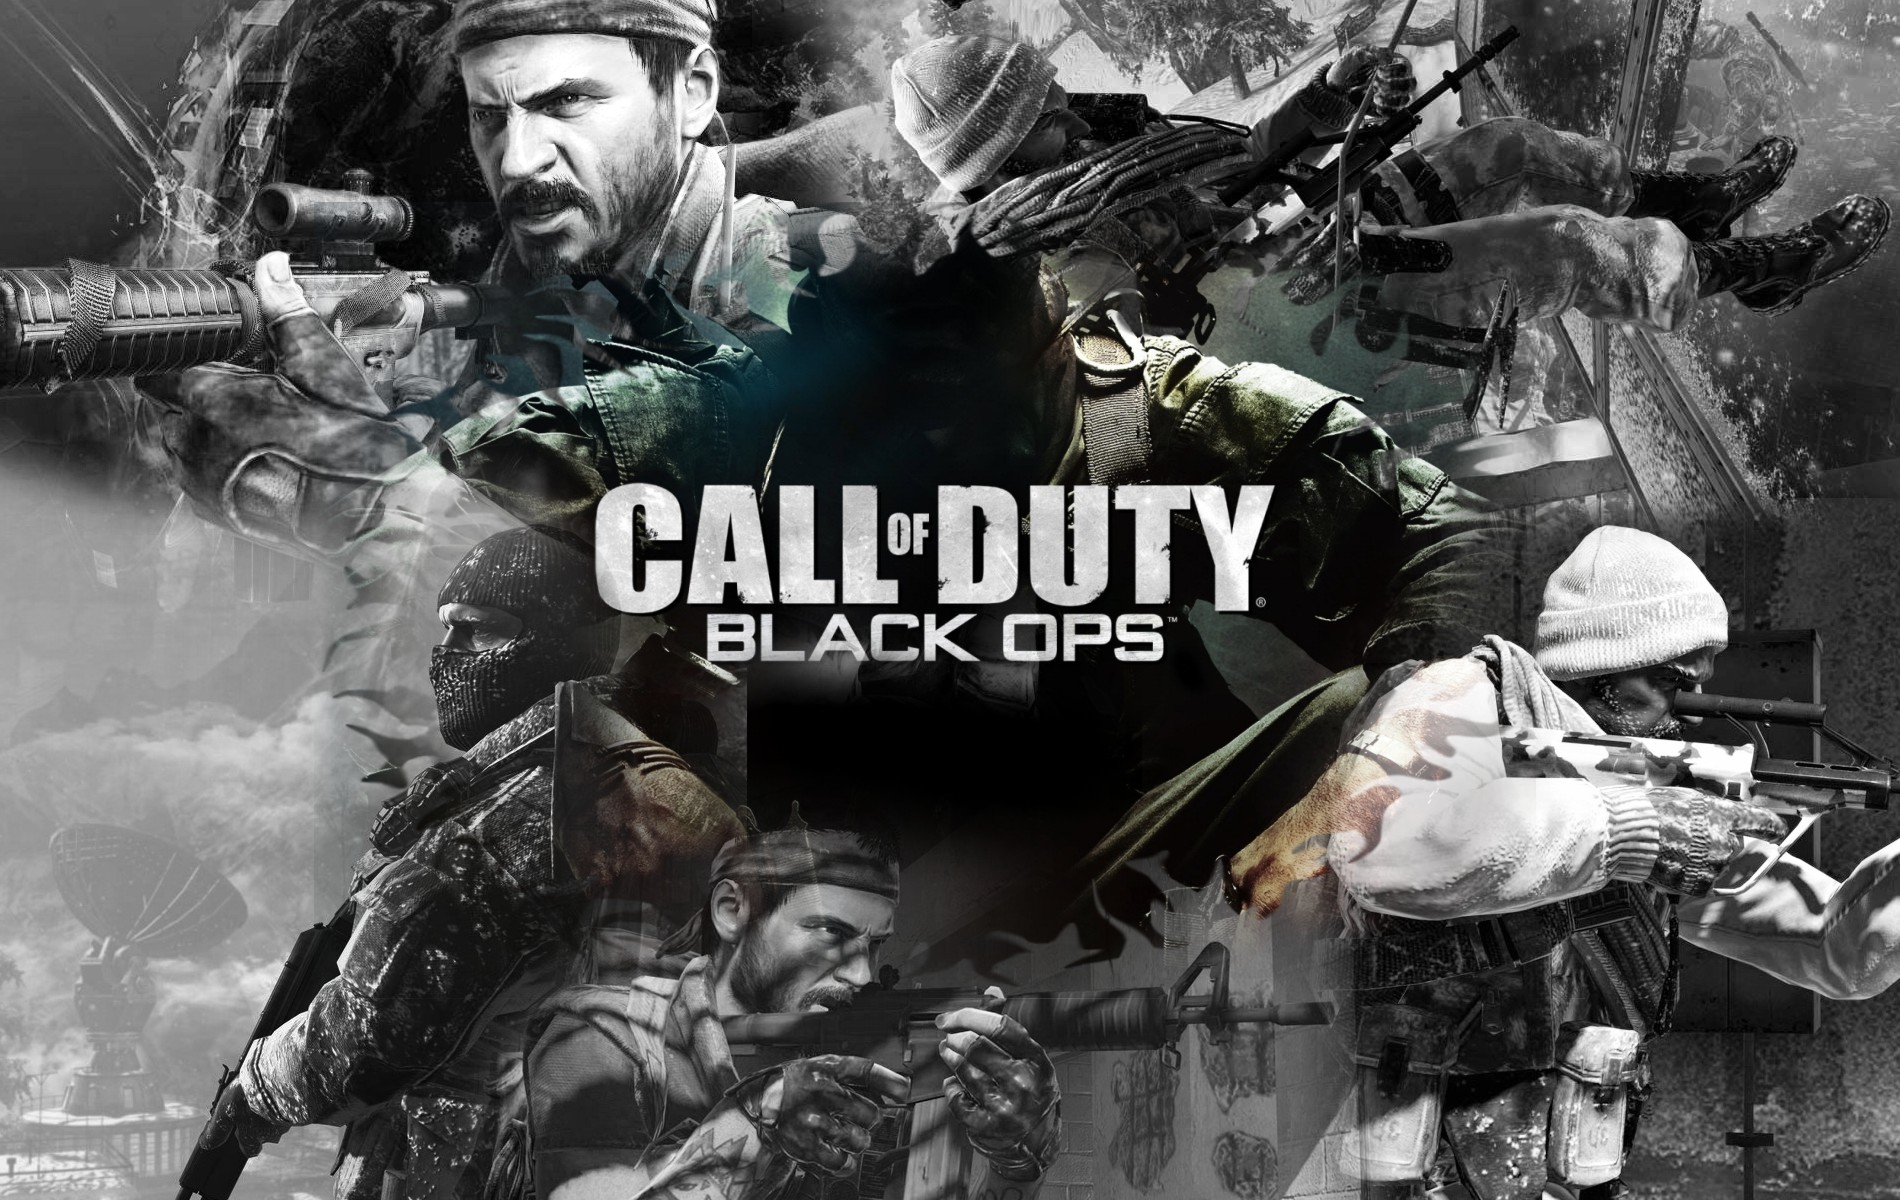 Call of duty 7 black ops working keygen steam hack